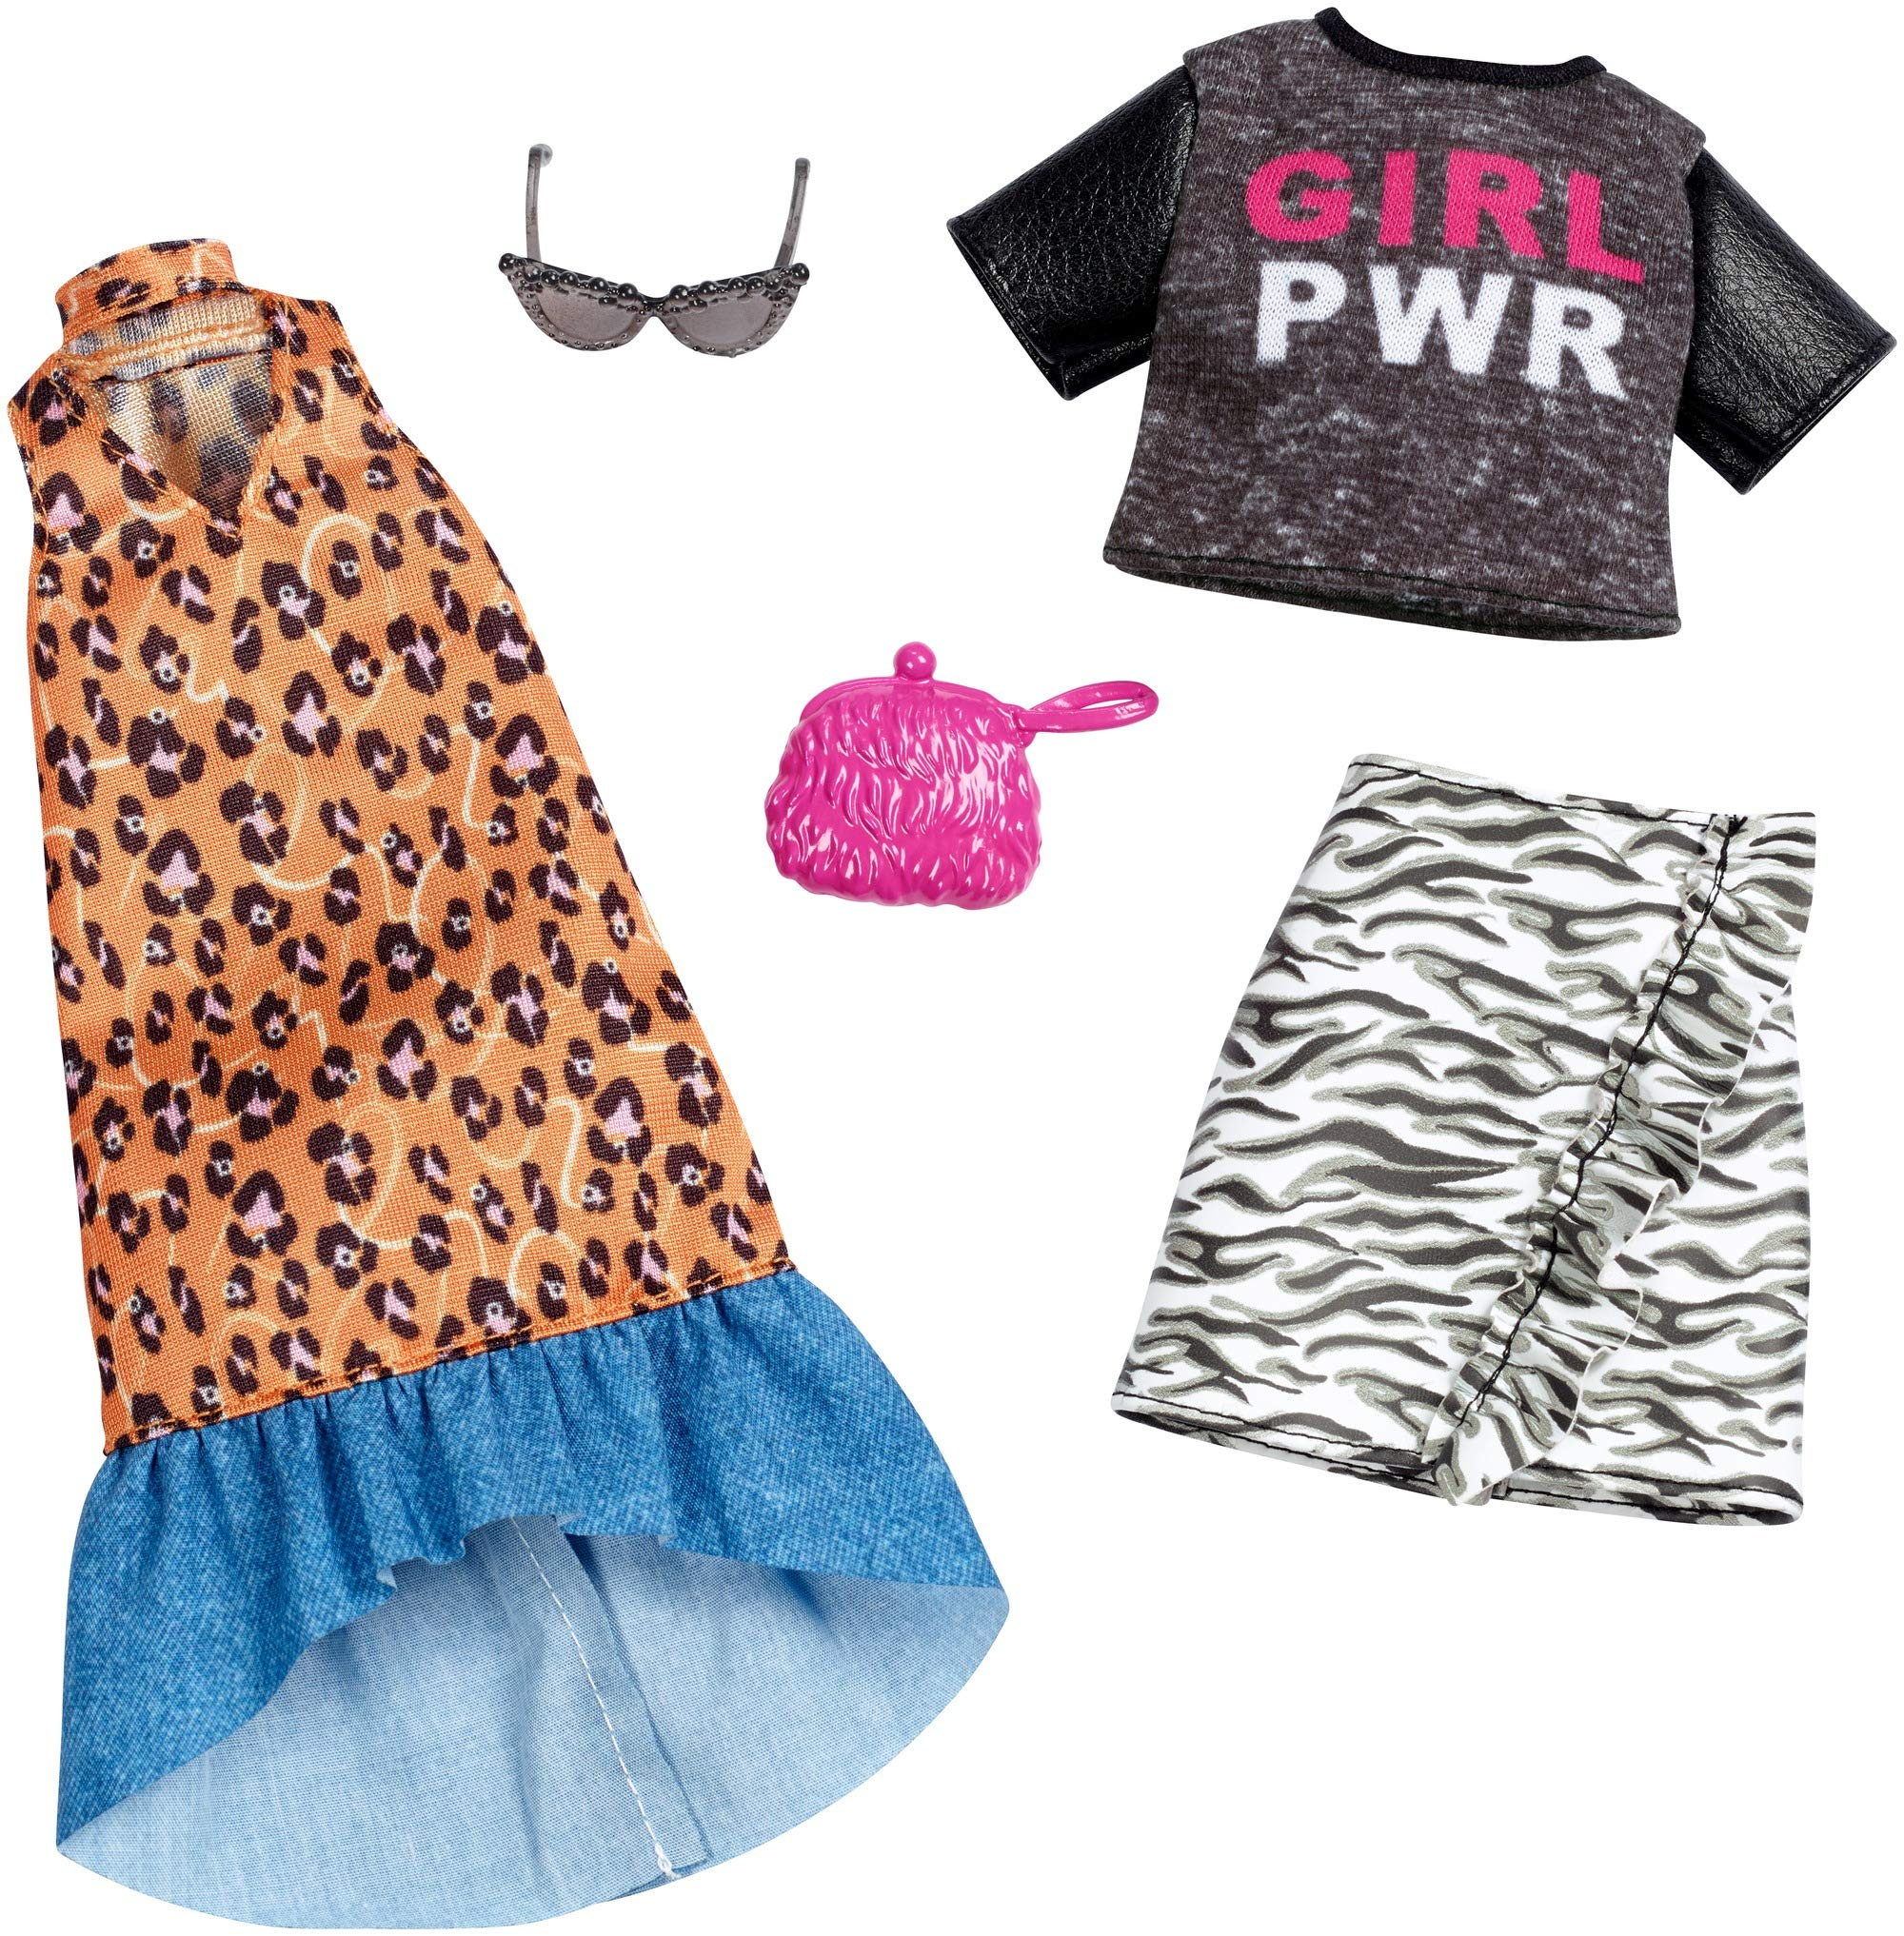 """Barbie Clothes: 2 Outfits for Barbie Doll Feature """"Girl Power"""" Tee and Animal Prints On Long Dress and Ruffled Skirt, Gift for 3 to 8 Year Olds"""